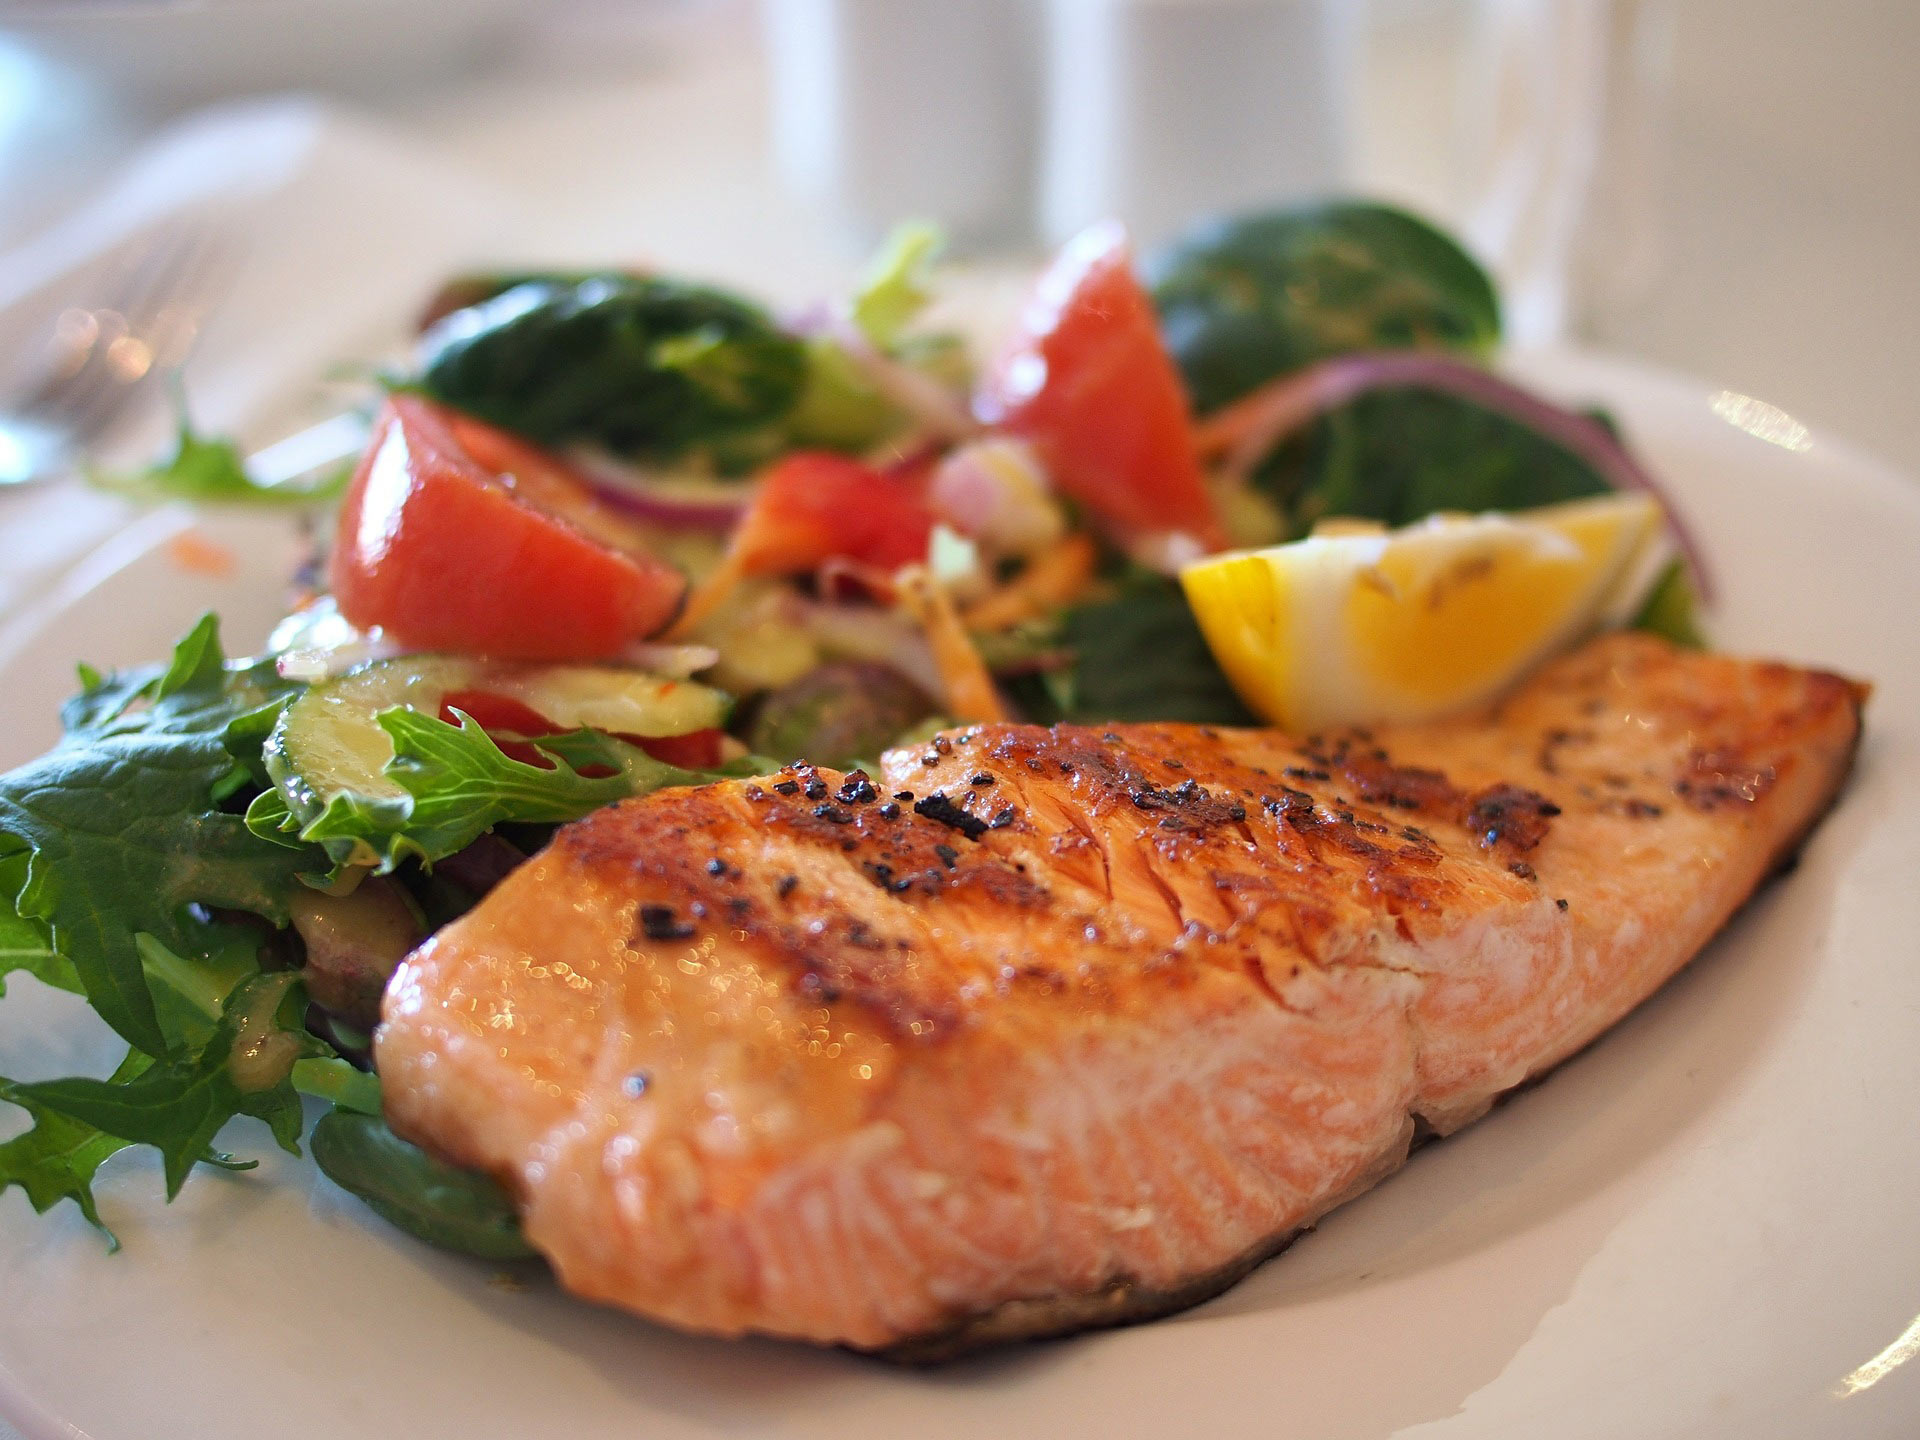 Atkins Style Diet May Improve Brain Function And Memory In Older Adults Medicine Nutrition Sci News Com